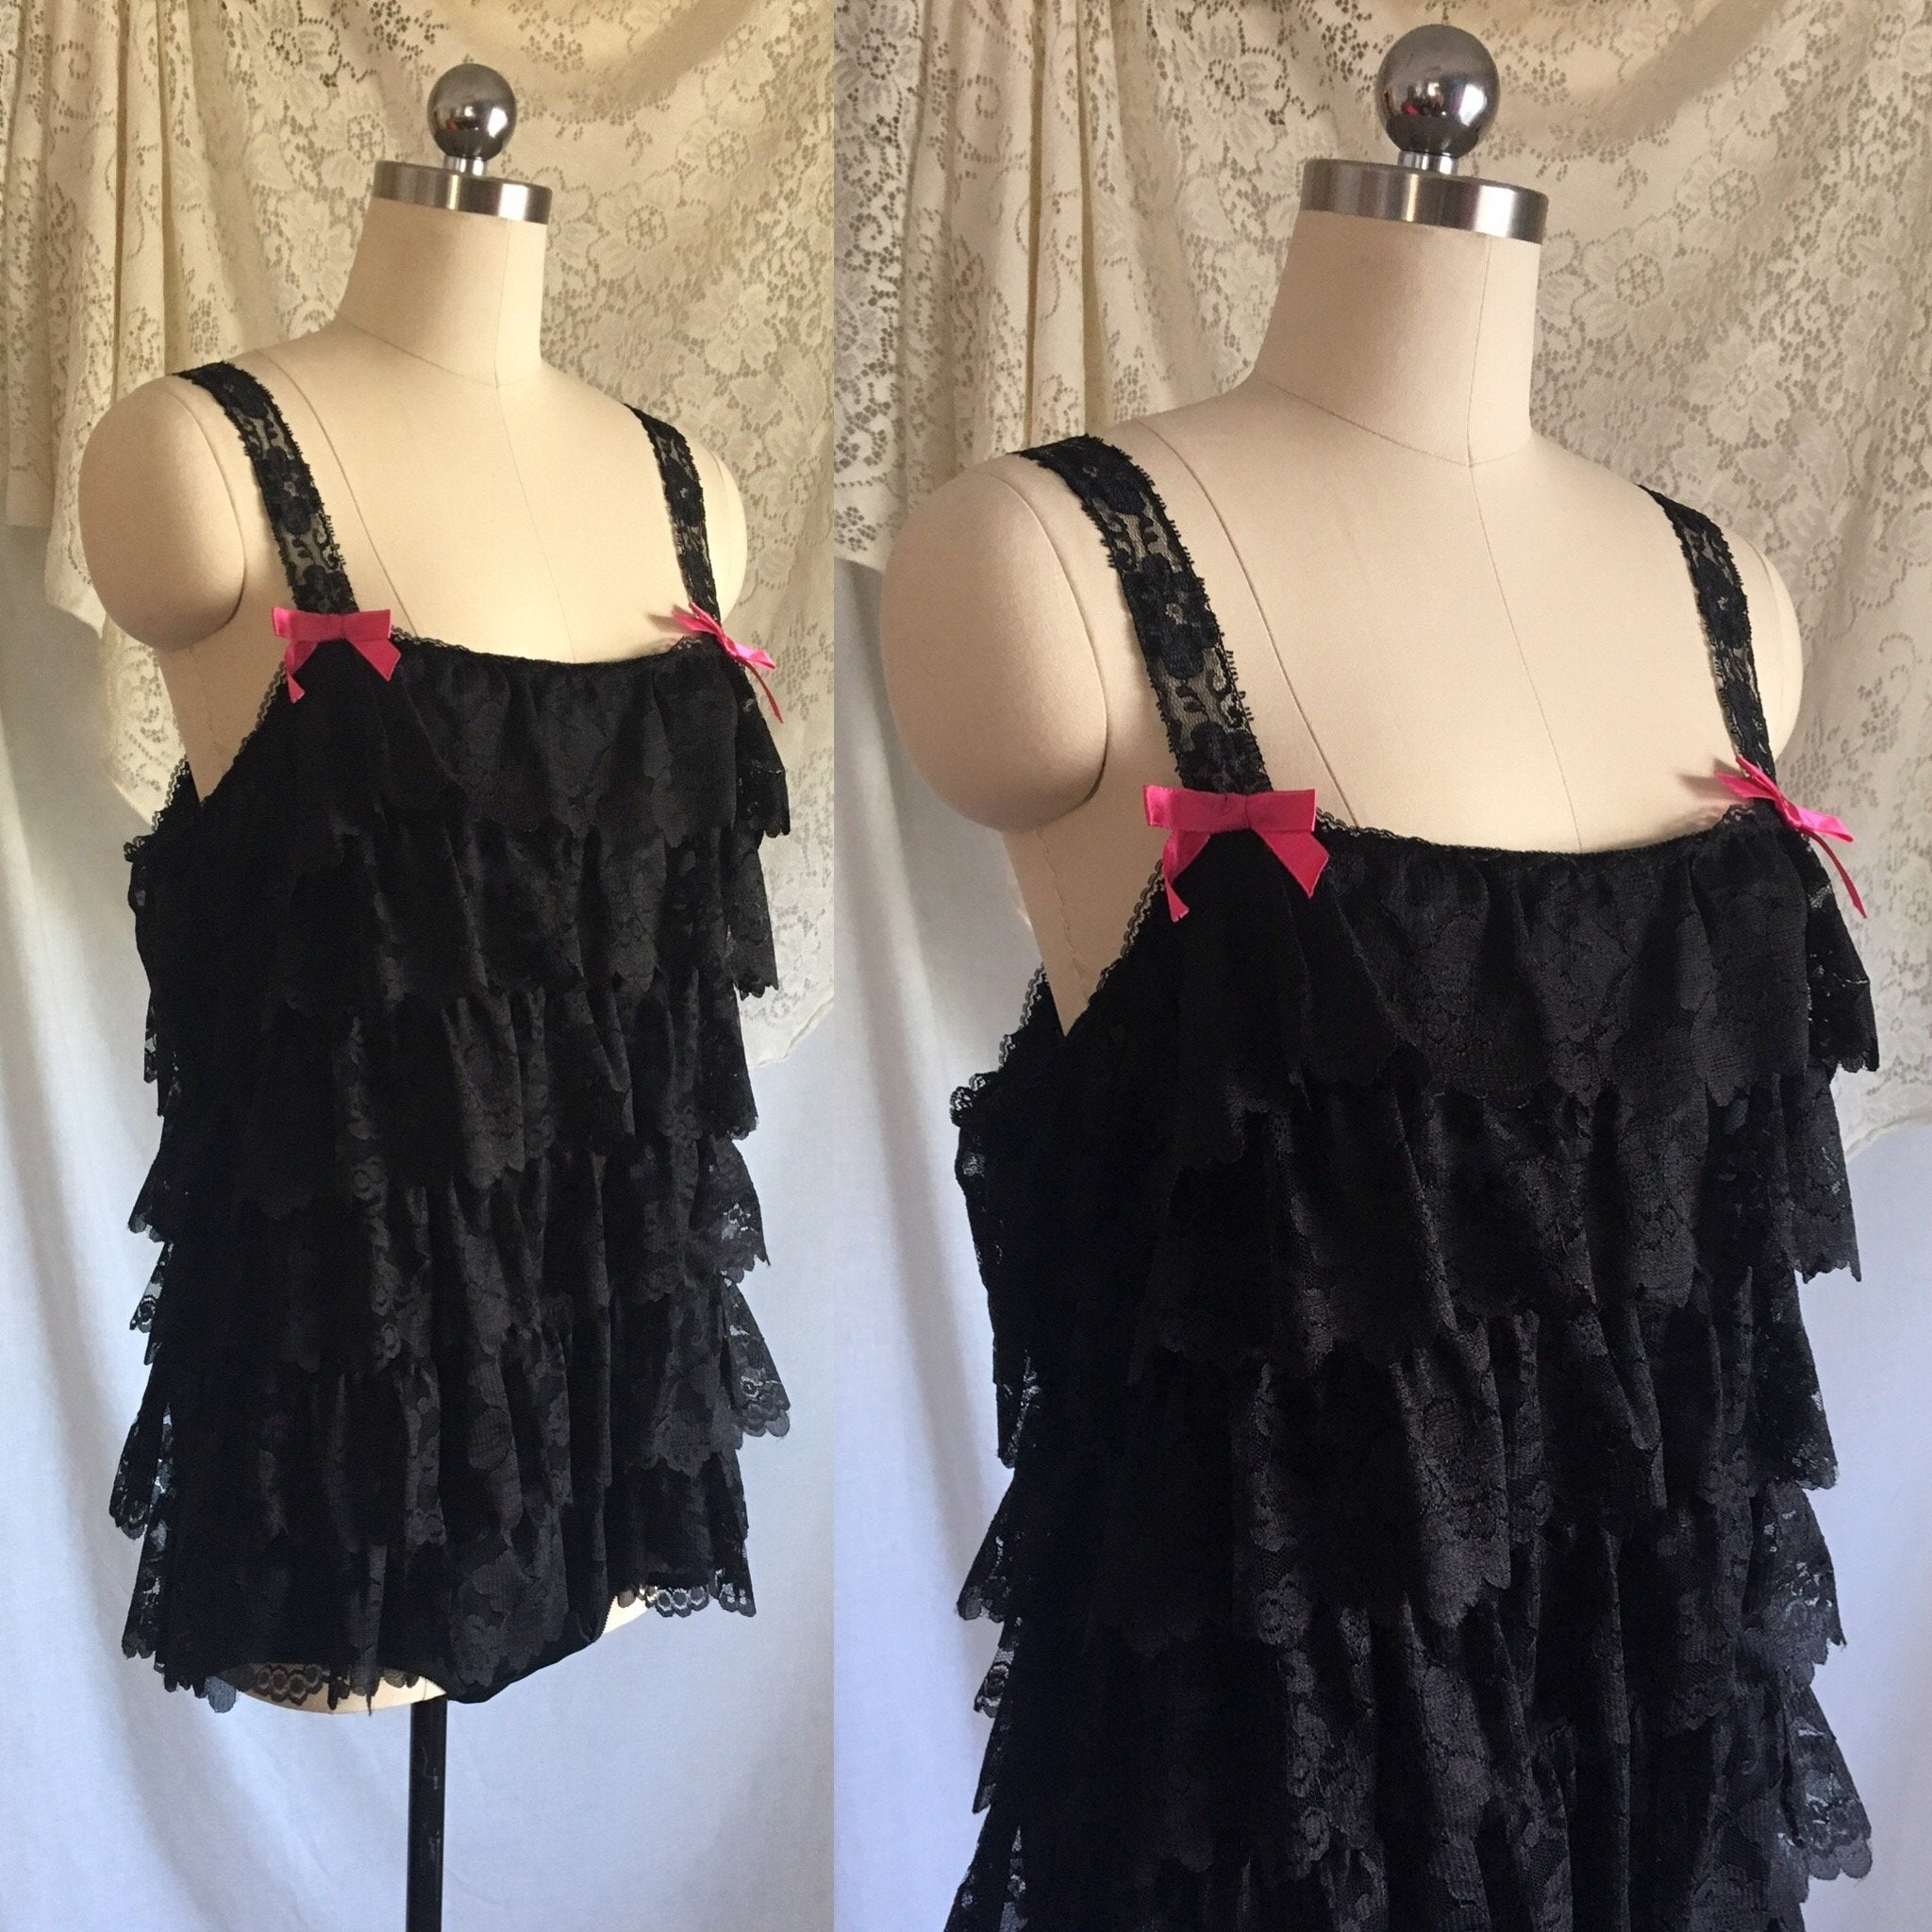 Vintage 1960's Teddy Romper | Black Nylon Lace Ruffles with Hot Pink Bows | New with Tags | Jeri Morton | Size M - Daggers & Dames